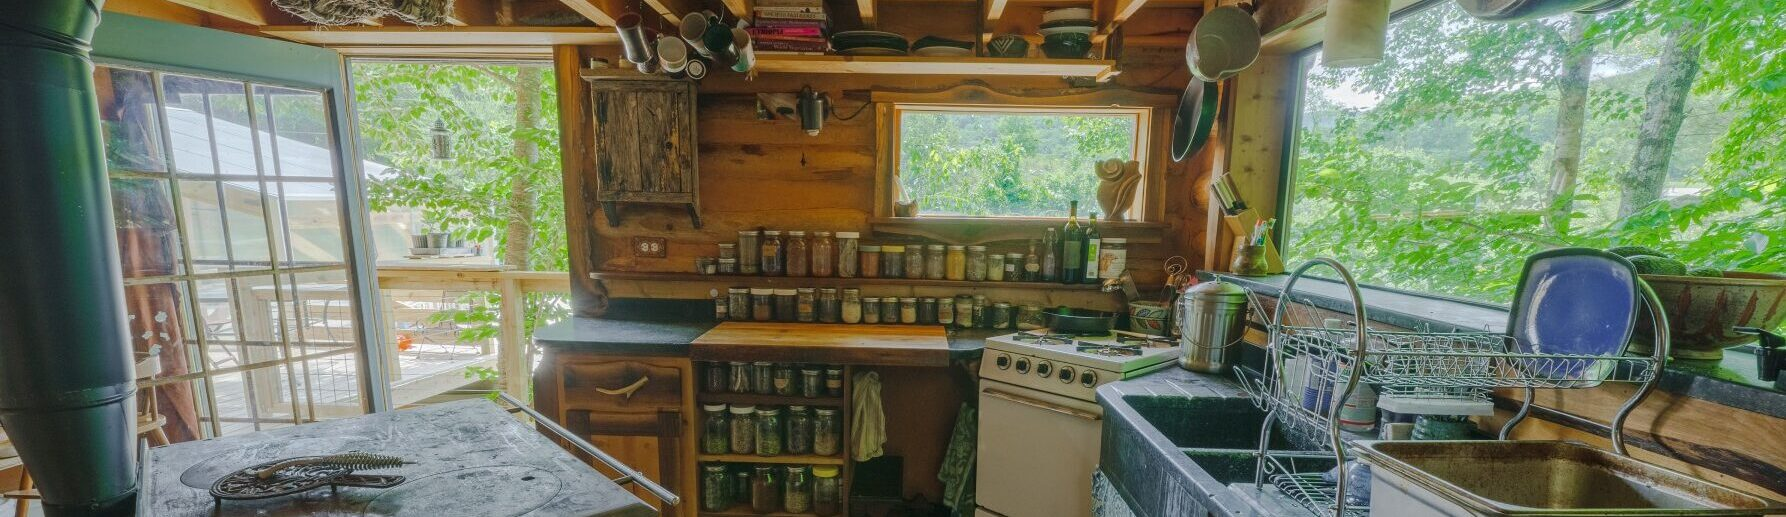 tiny house kitchen in log cabin